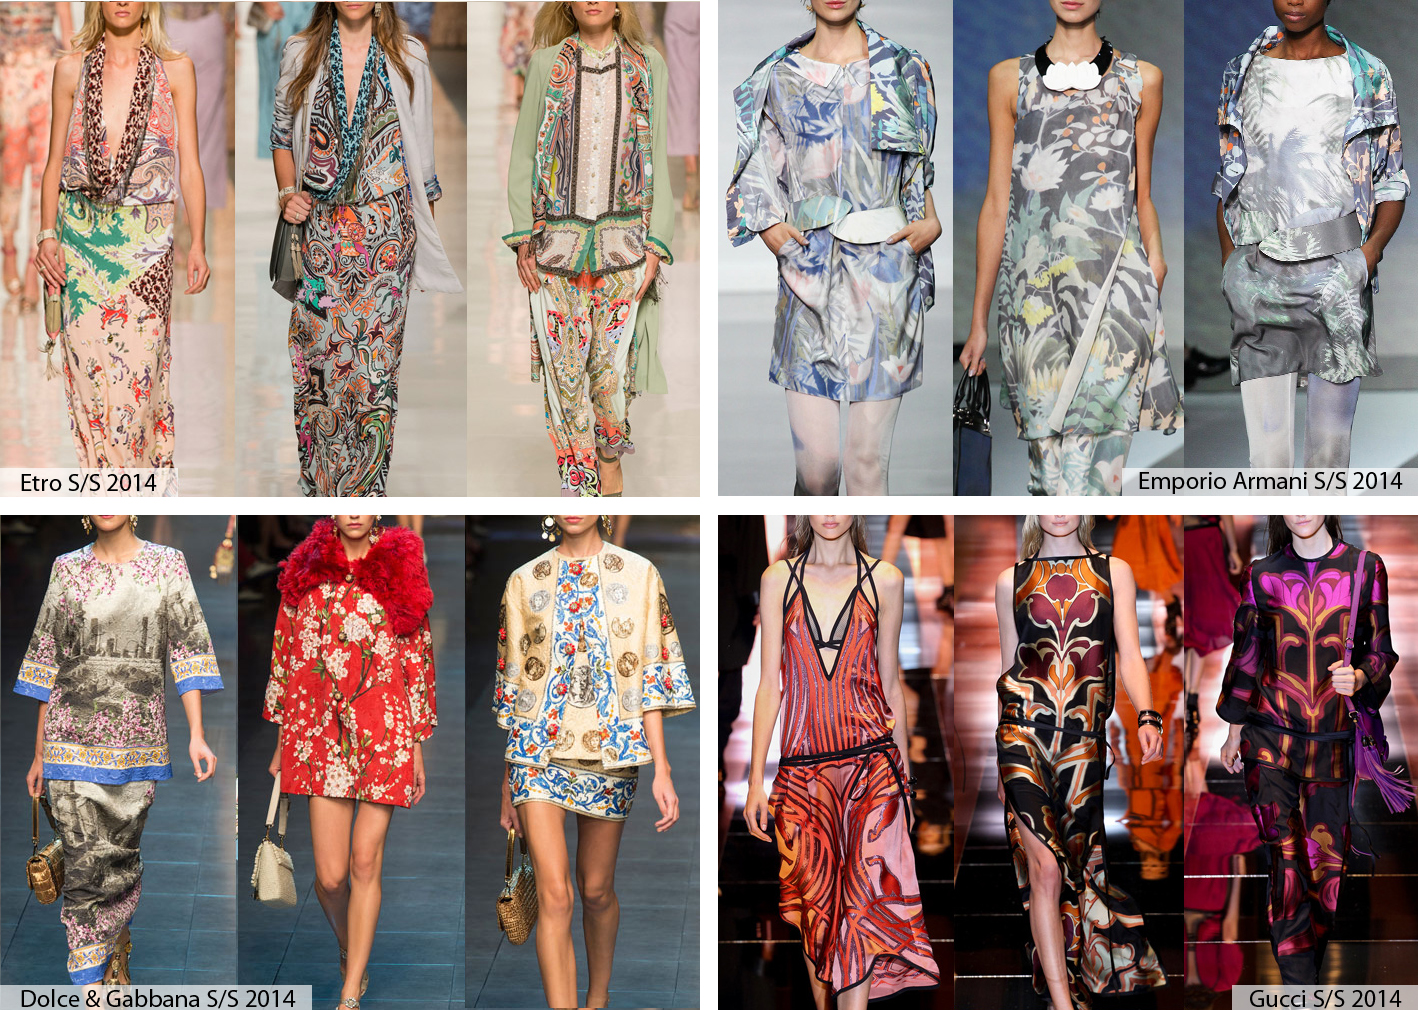 2356 besides Milan Fashion Week Womenswear Print Highlights Part 1 Autumnwinter 201617 likewise Art Nouveau Spring Summer 14 as well From A Book On Art Nouveau in addition Origami Inspired Architecture 14 Geometric Structures. on art nouveau patterns